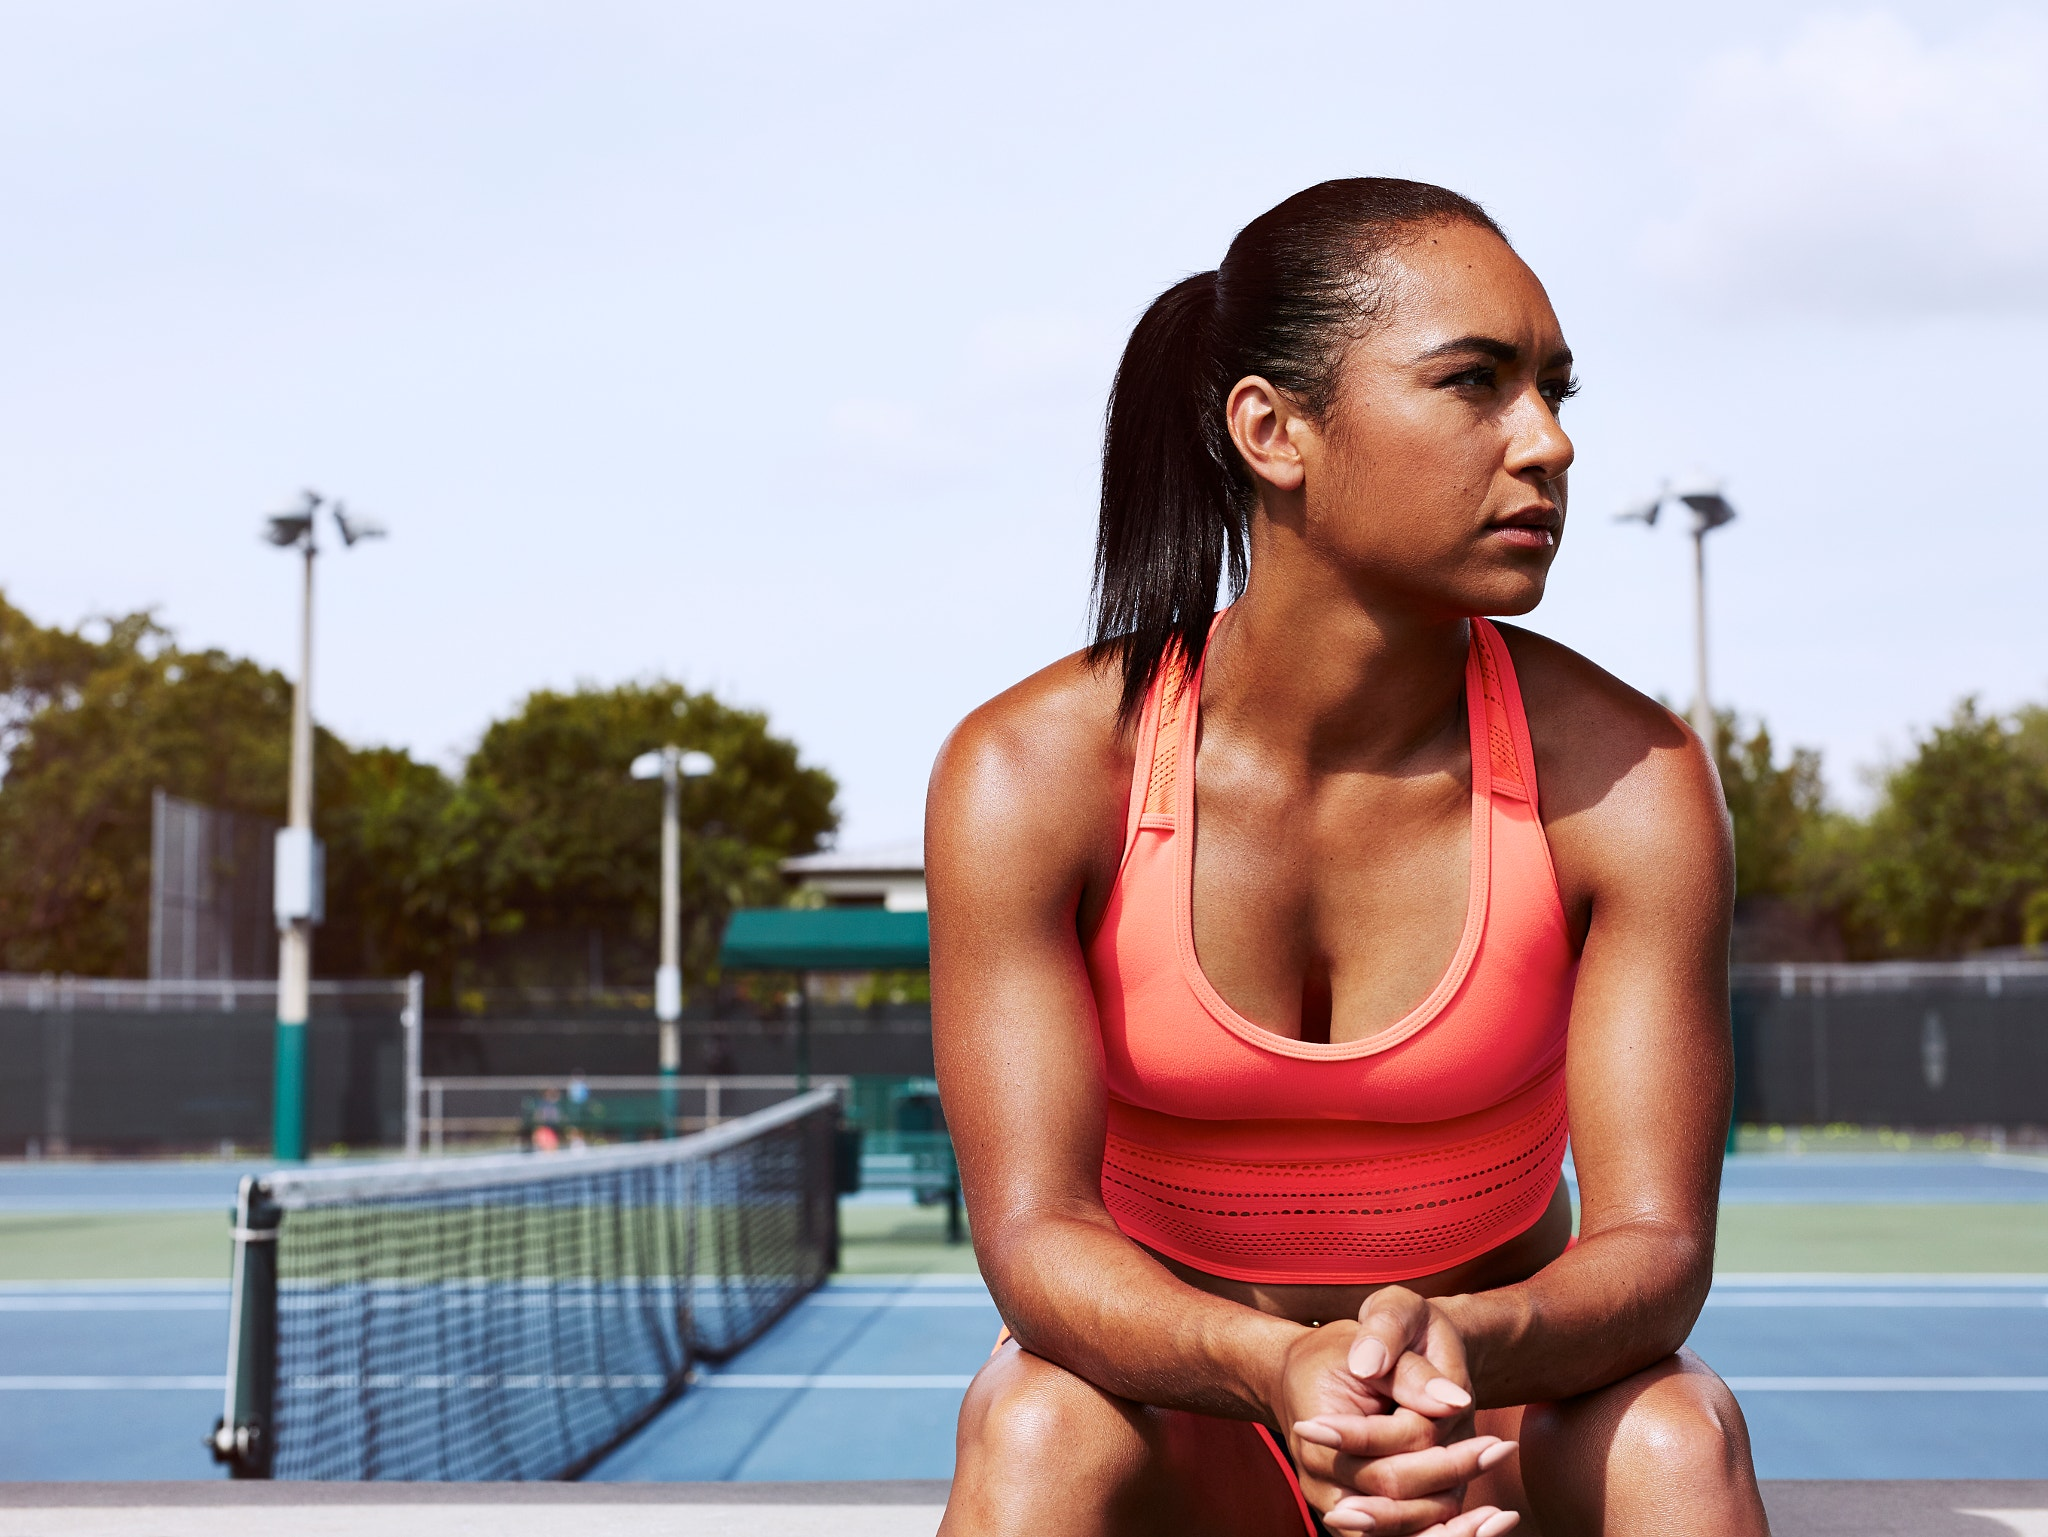 48 Hours in Miami: Photographing Pro Tennis Player Heather Watson